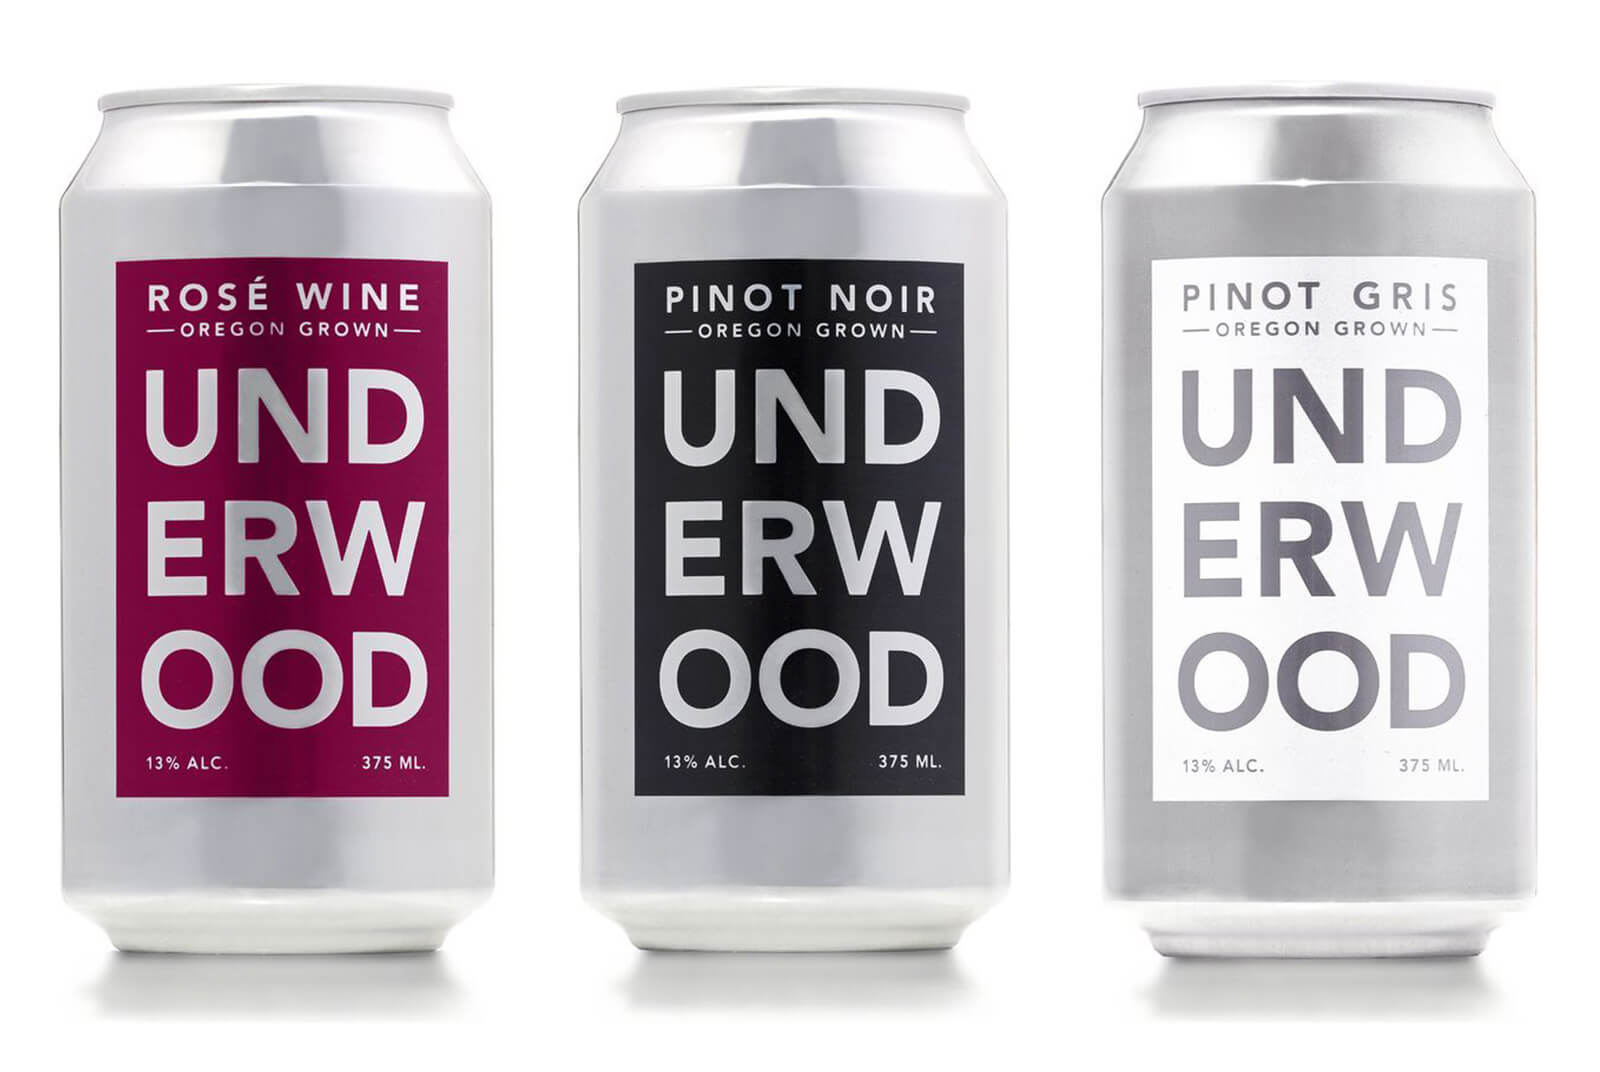 Image of Canned Wine packaging Underwood